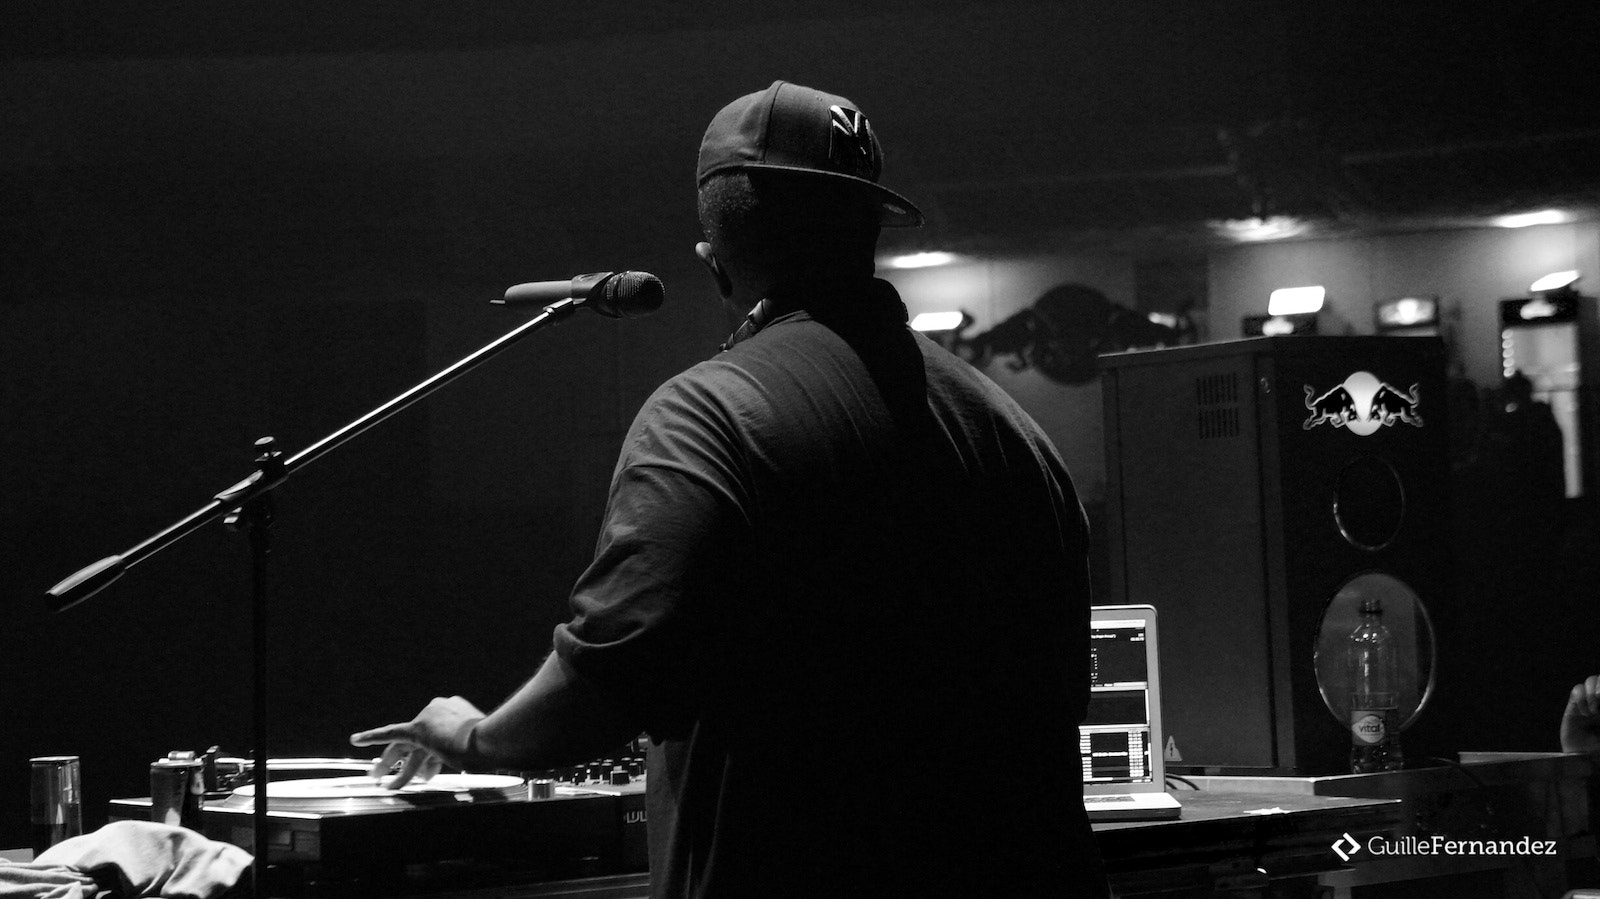 Photograph DJ Premier by Guillermo Fernandez Brombley on 500px